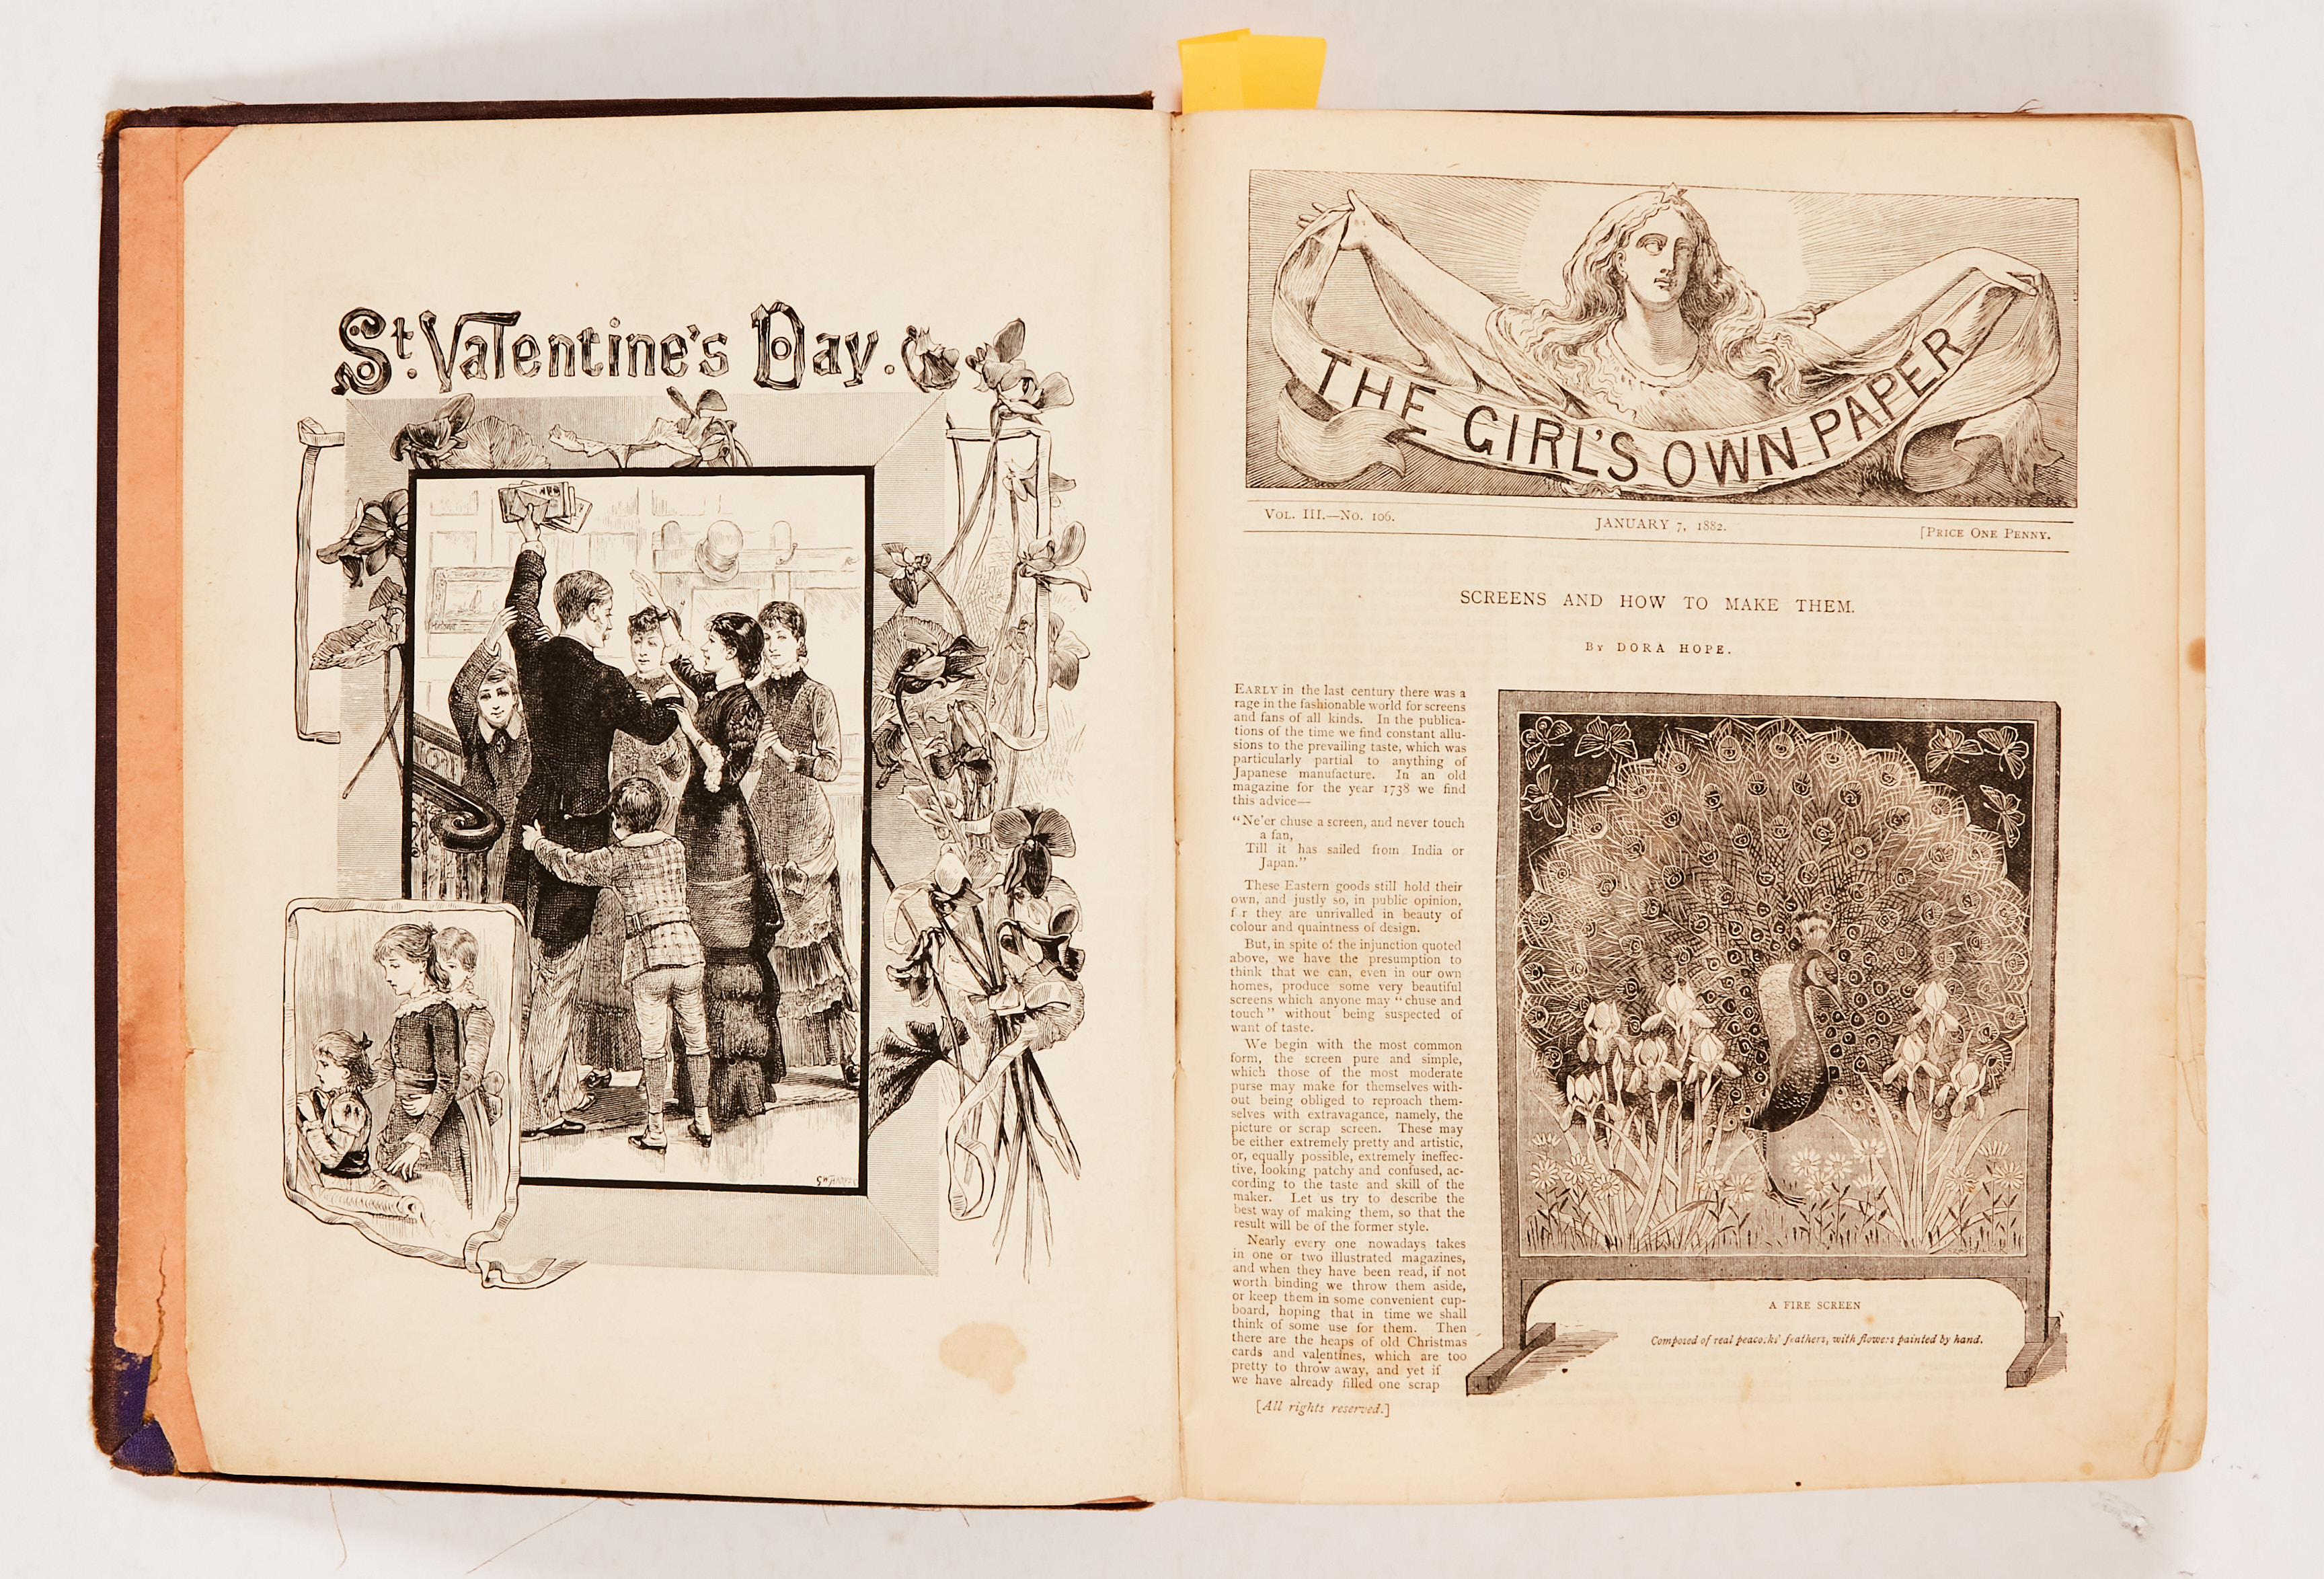 The Girl's Own Paper (1882) 106-135. Worn cloth binding. Interior pages [fn-/fn+] (20)